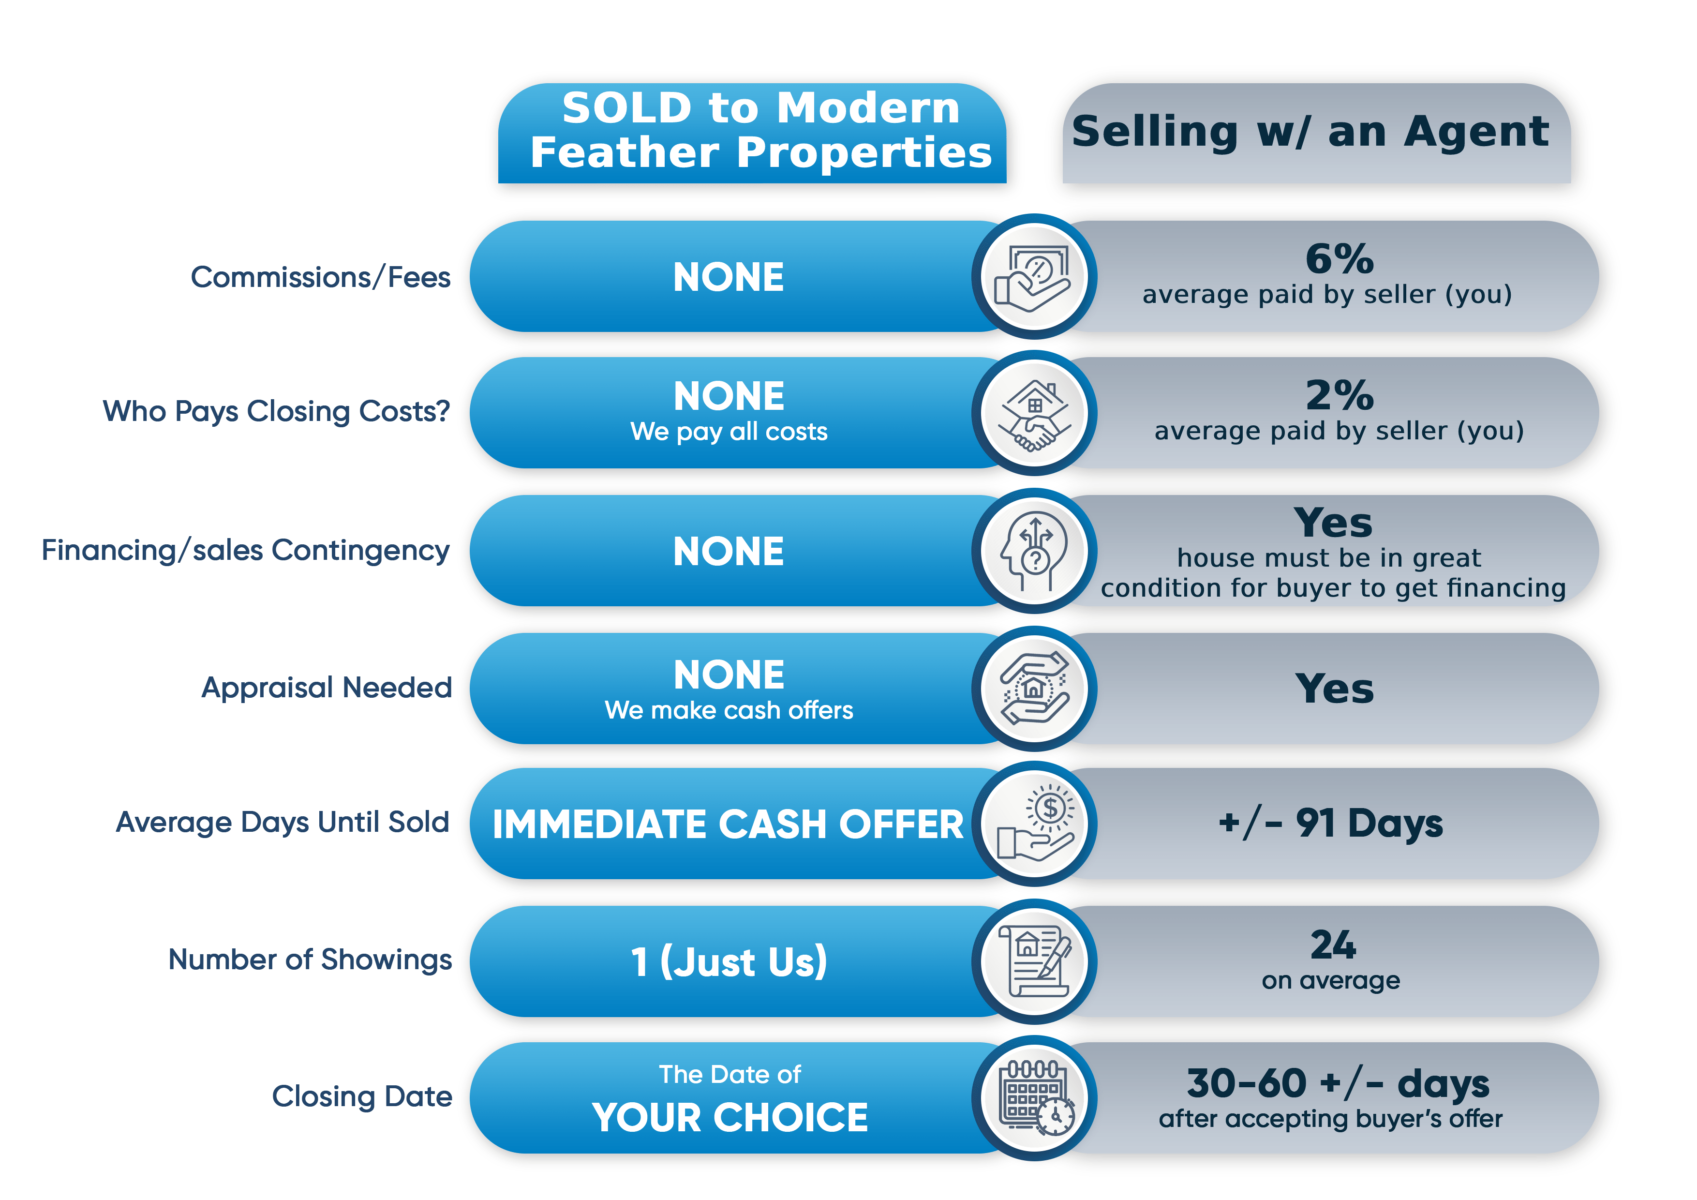 Chart showing differences between selling with a realtor and selling to Modern Feather. Modern Feather charges no commissions or fees, pays all closing costs, and doesn't require an appraisal.